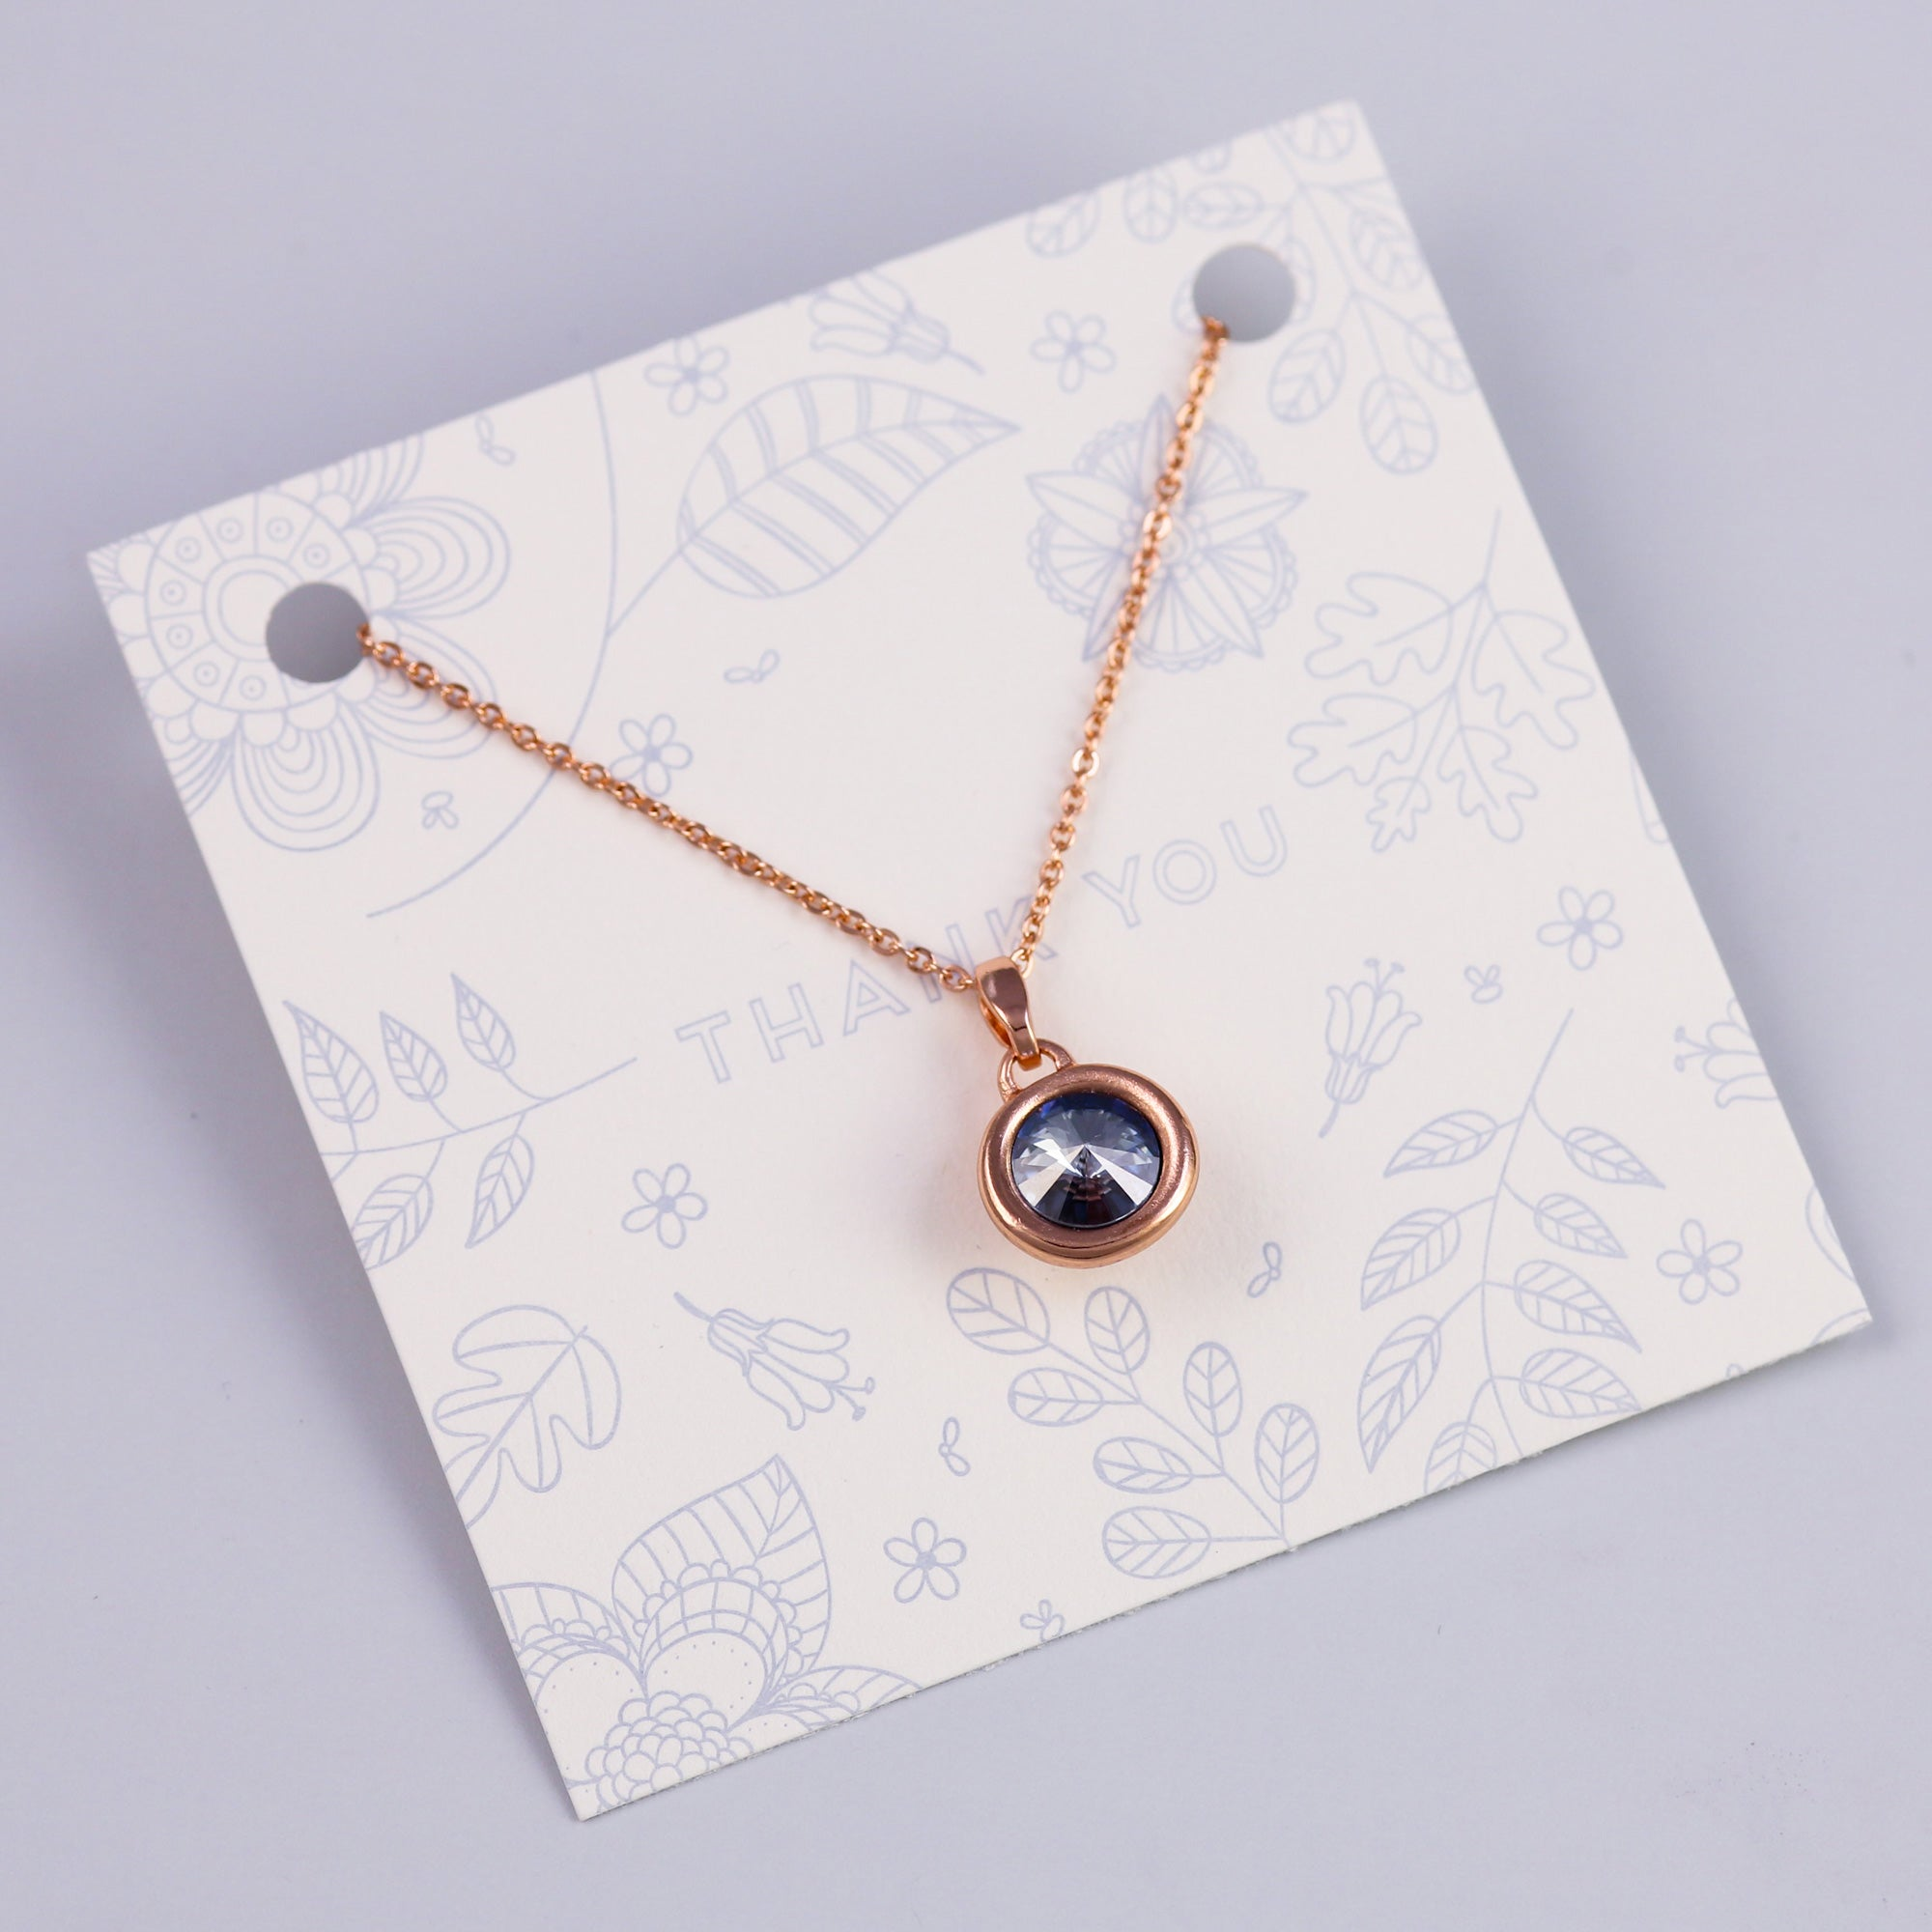 Thank You Sentiment Card with Rose Gold Gemstone Charm